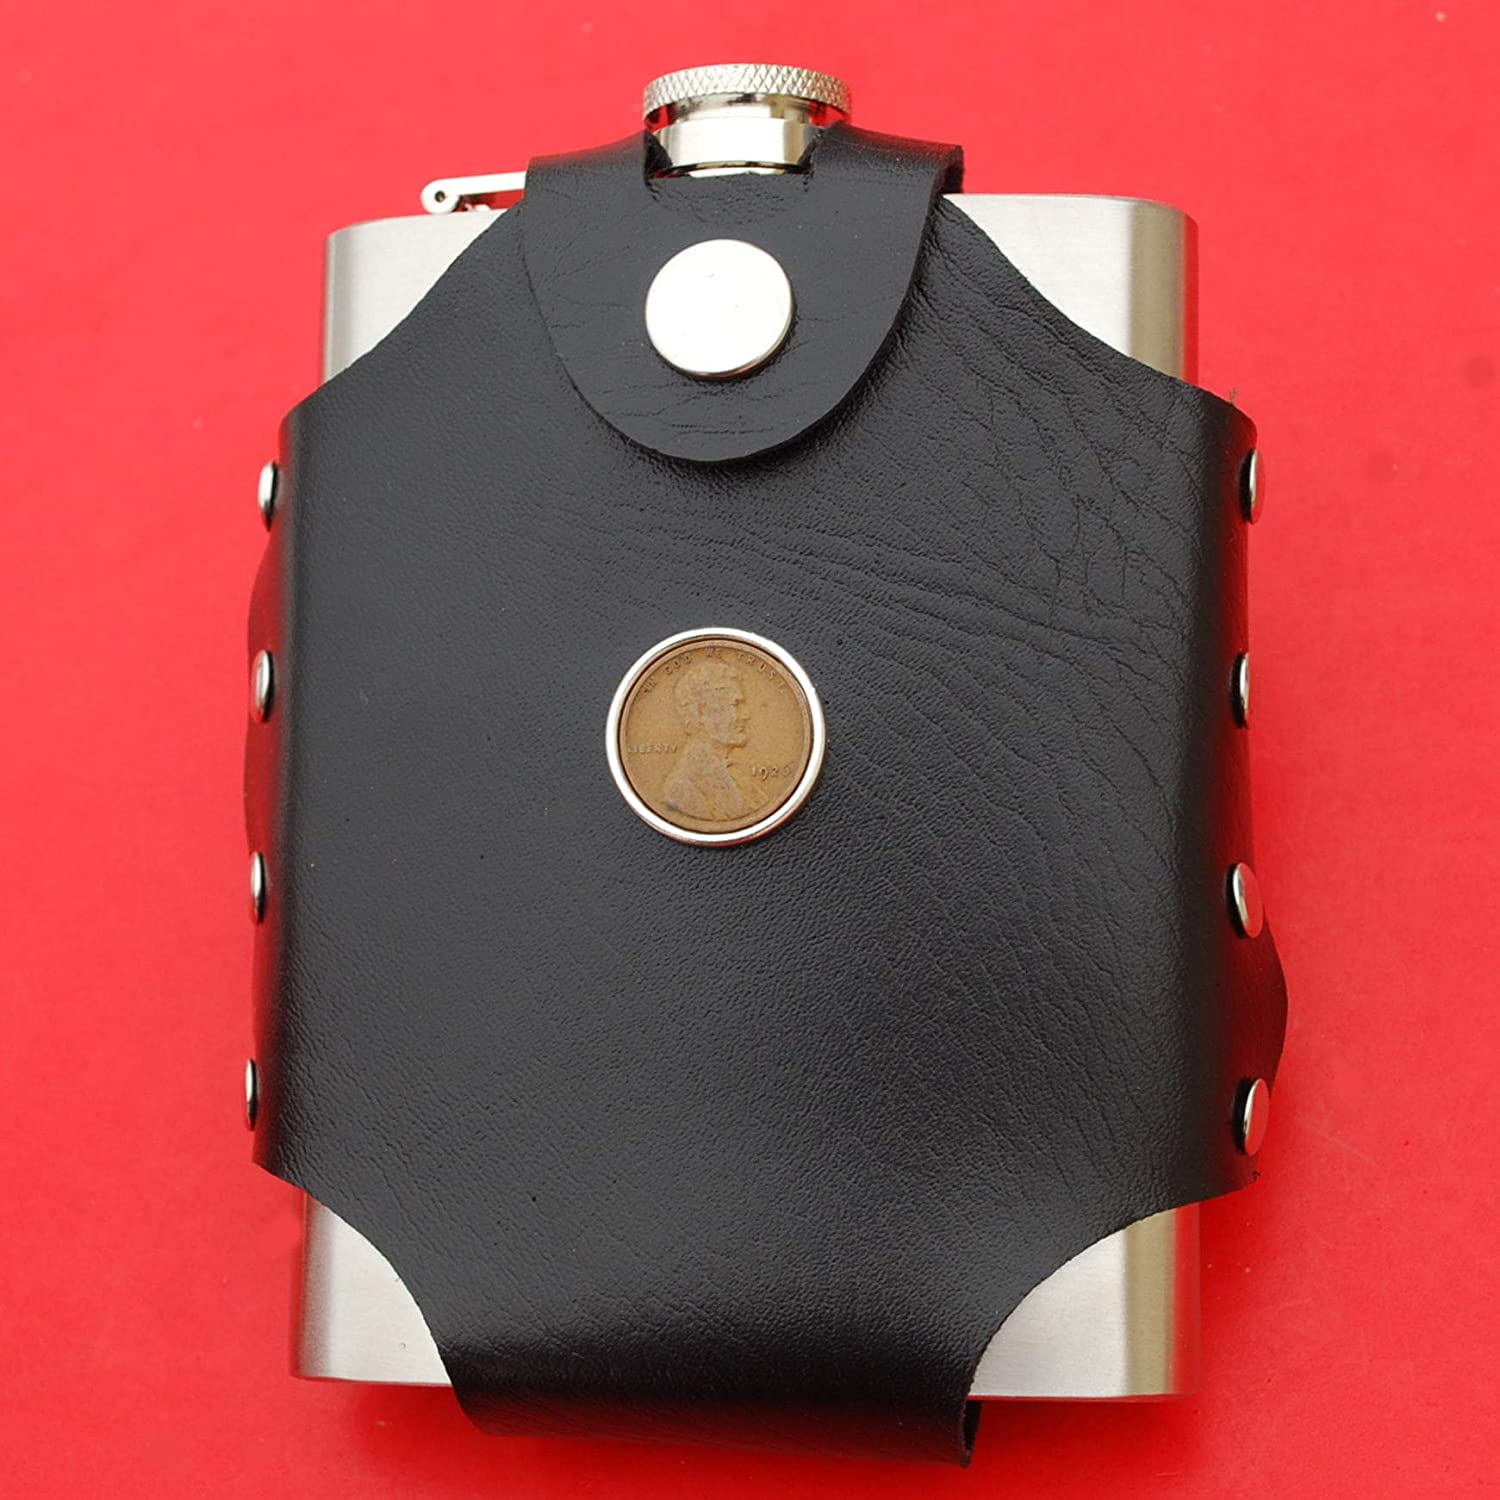 Water Wine etc US 1959 Lincoln Penny BU Uncirculated 1 Cent Coin Leak Proof Black PU Leather Wrapped Stainless Steel 8 Oz Hip Flask Liquor - Lucky Penny